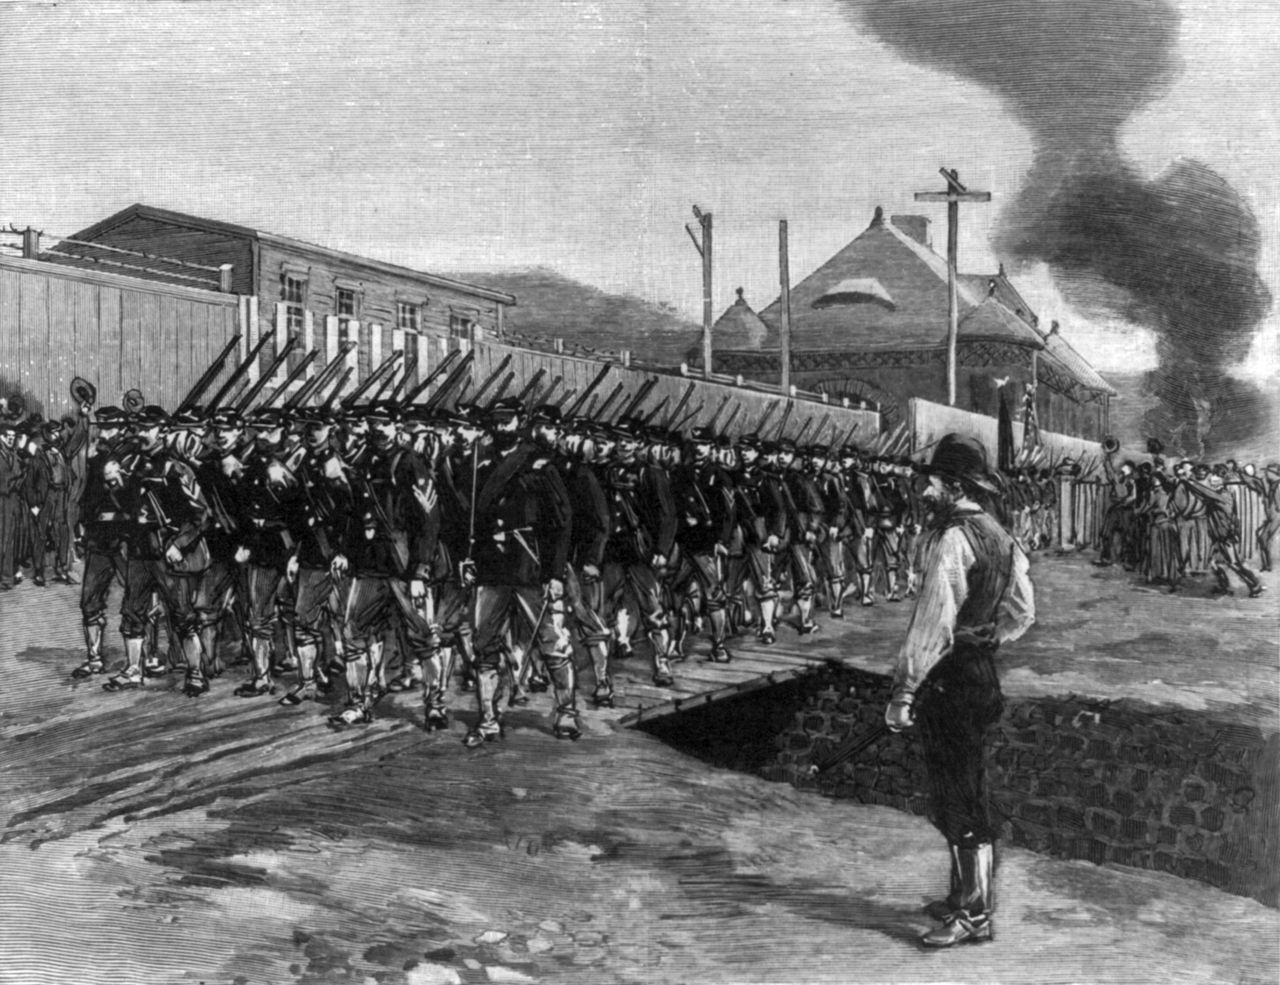 The Pennsylvania state militia lines up to attack striking workers at Carnegie Steel's Homestead works in 1892. All in the name of freedom, of course.